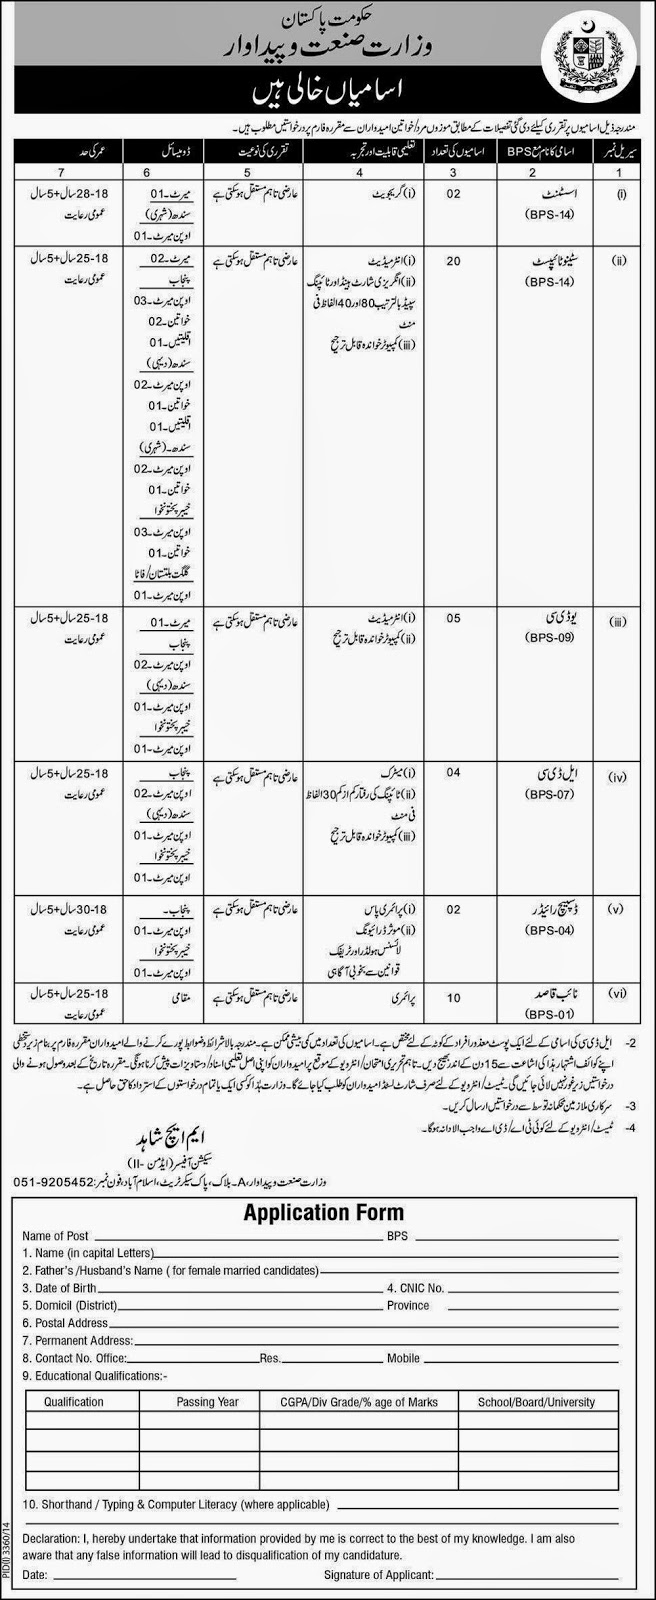 Govt Of Pakistan Jobs